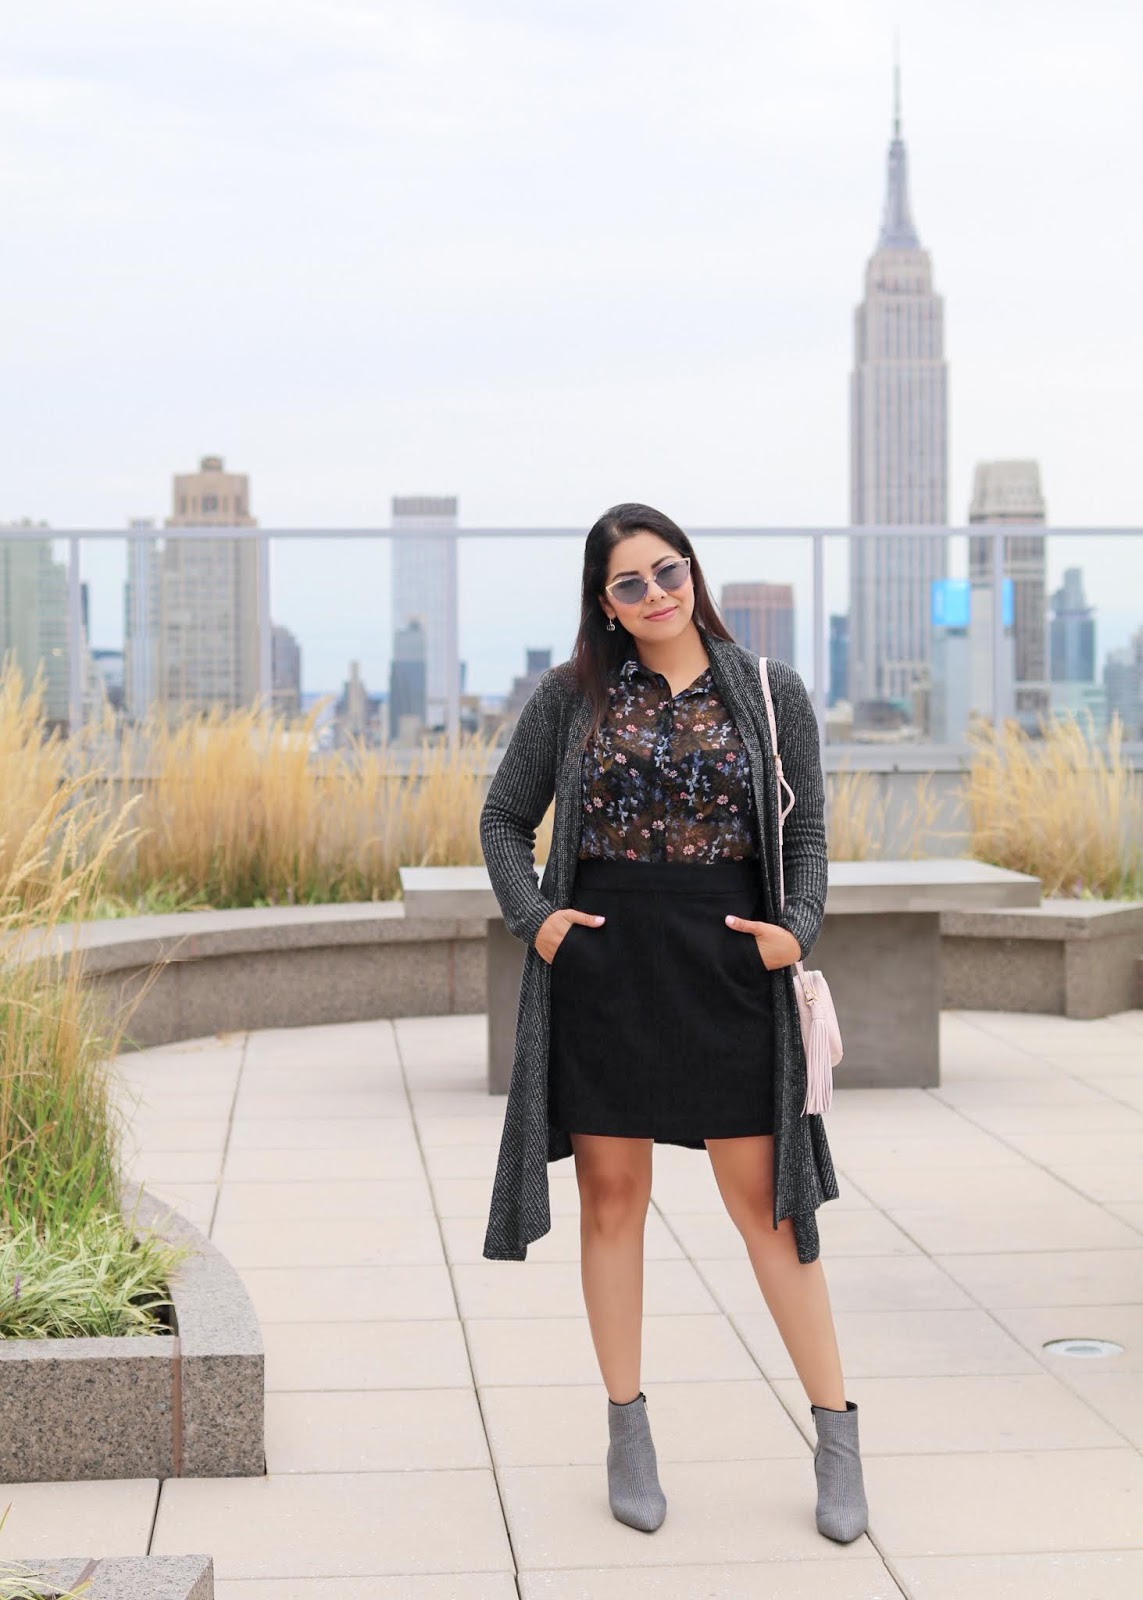 nyfw off duty style, how to wear a sheered floral top, how to wear cabi skirt